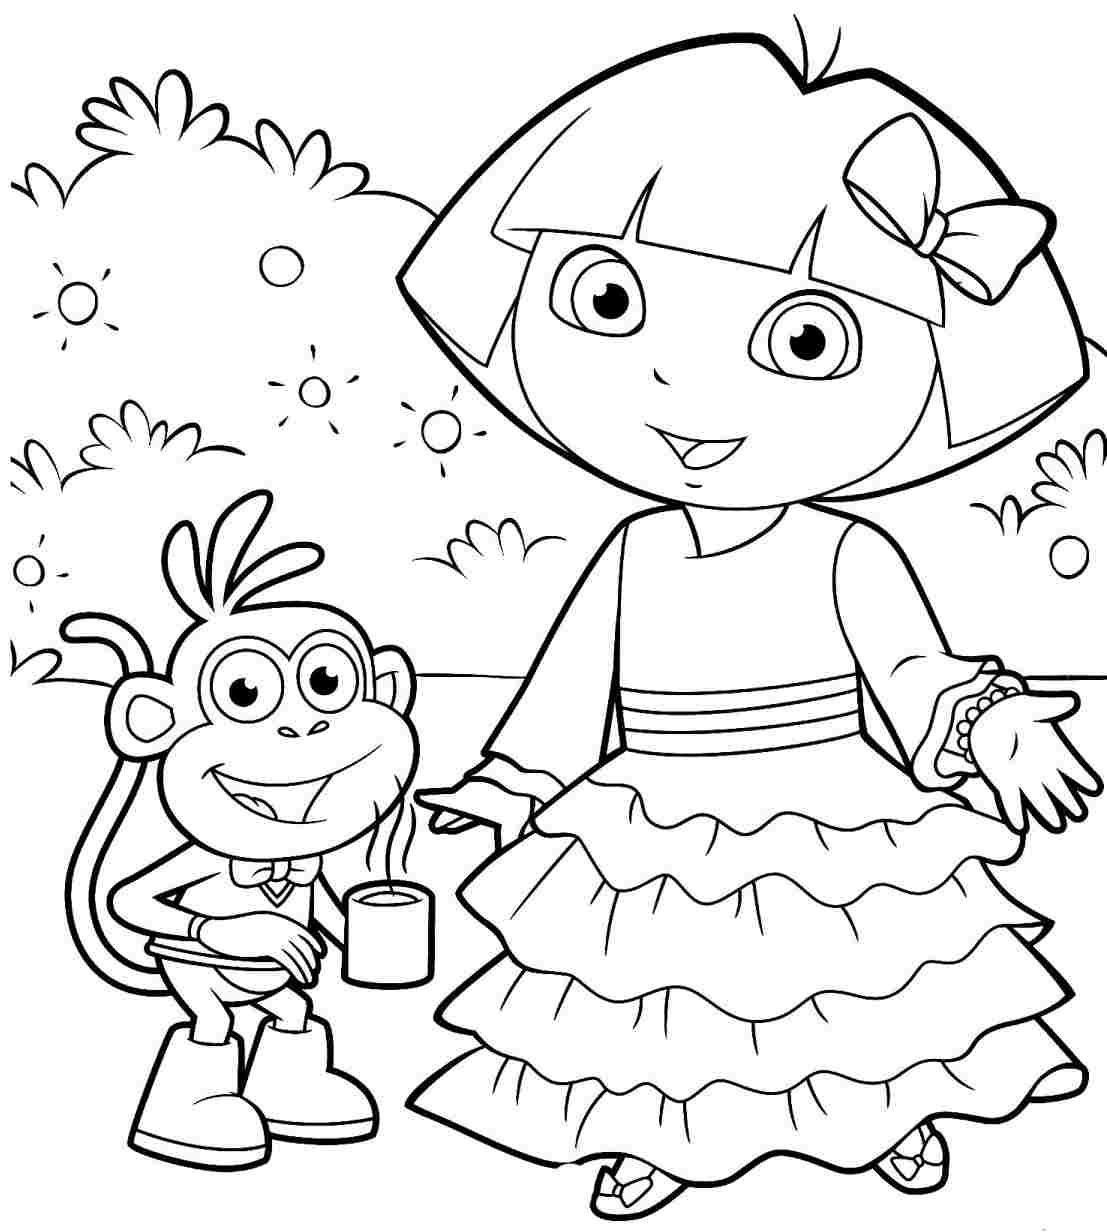 dora painting pictures dora coloring page free printable coloring pages painting dora pictures